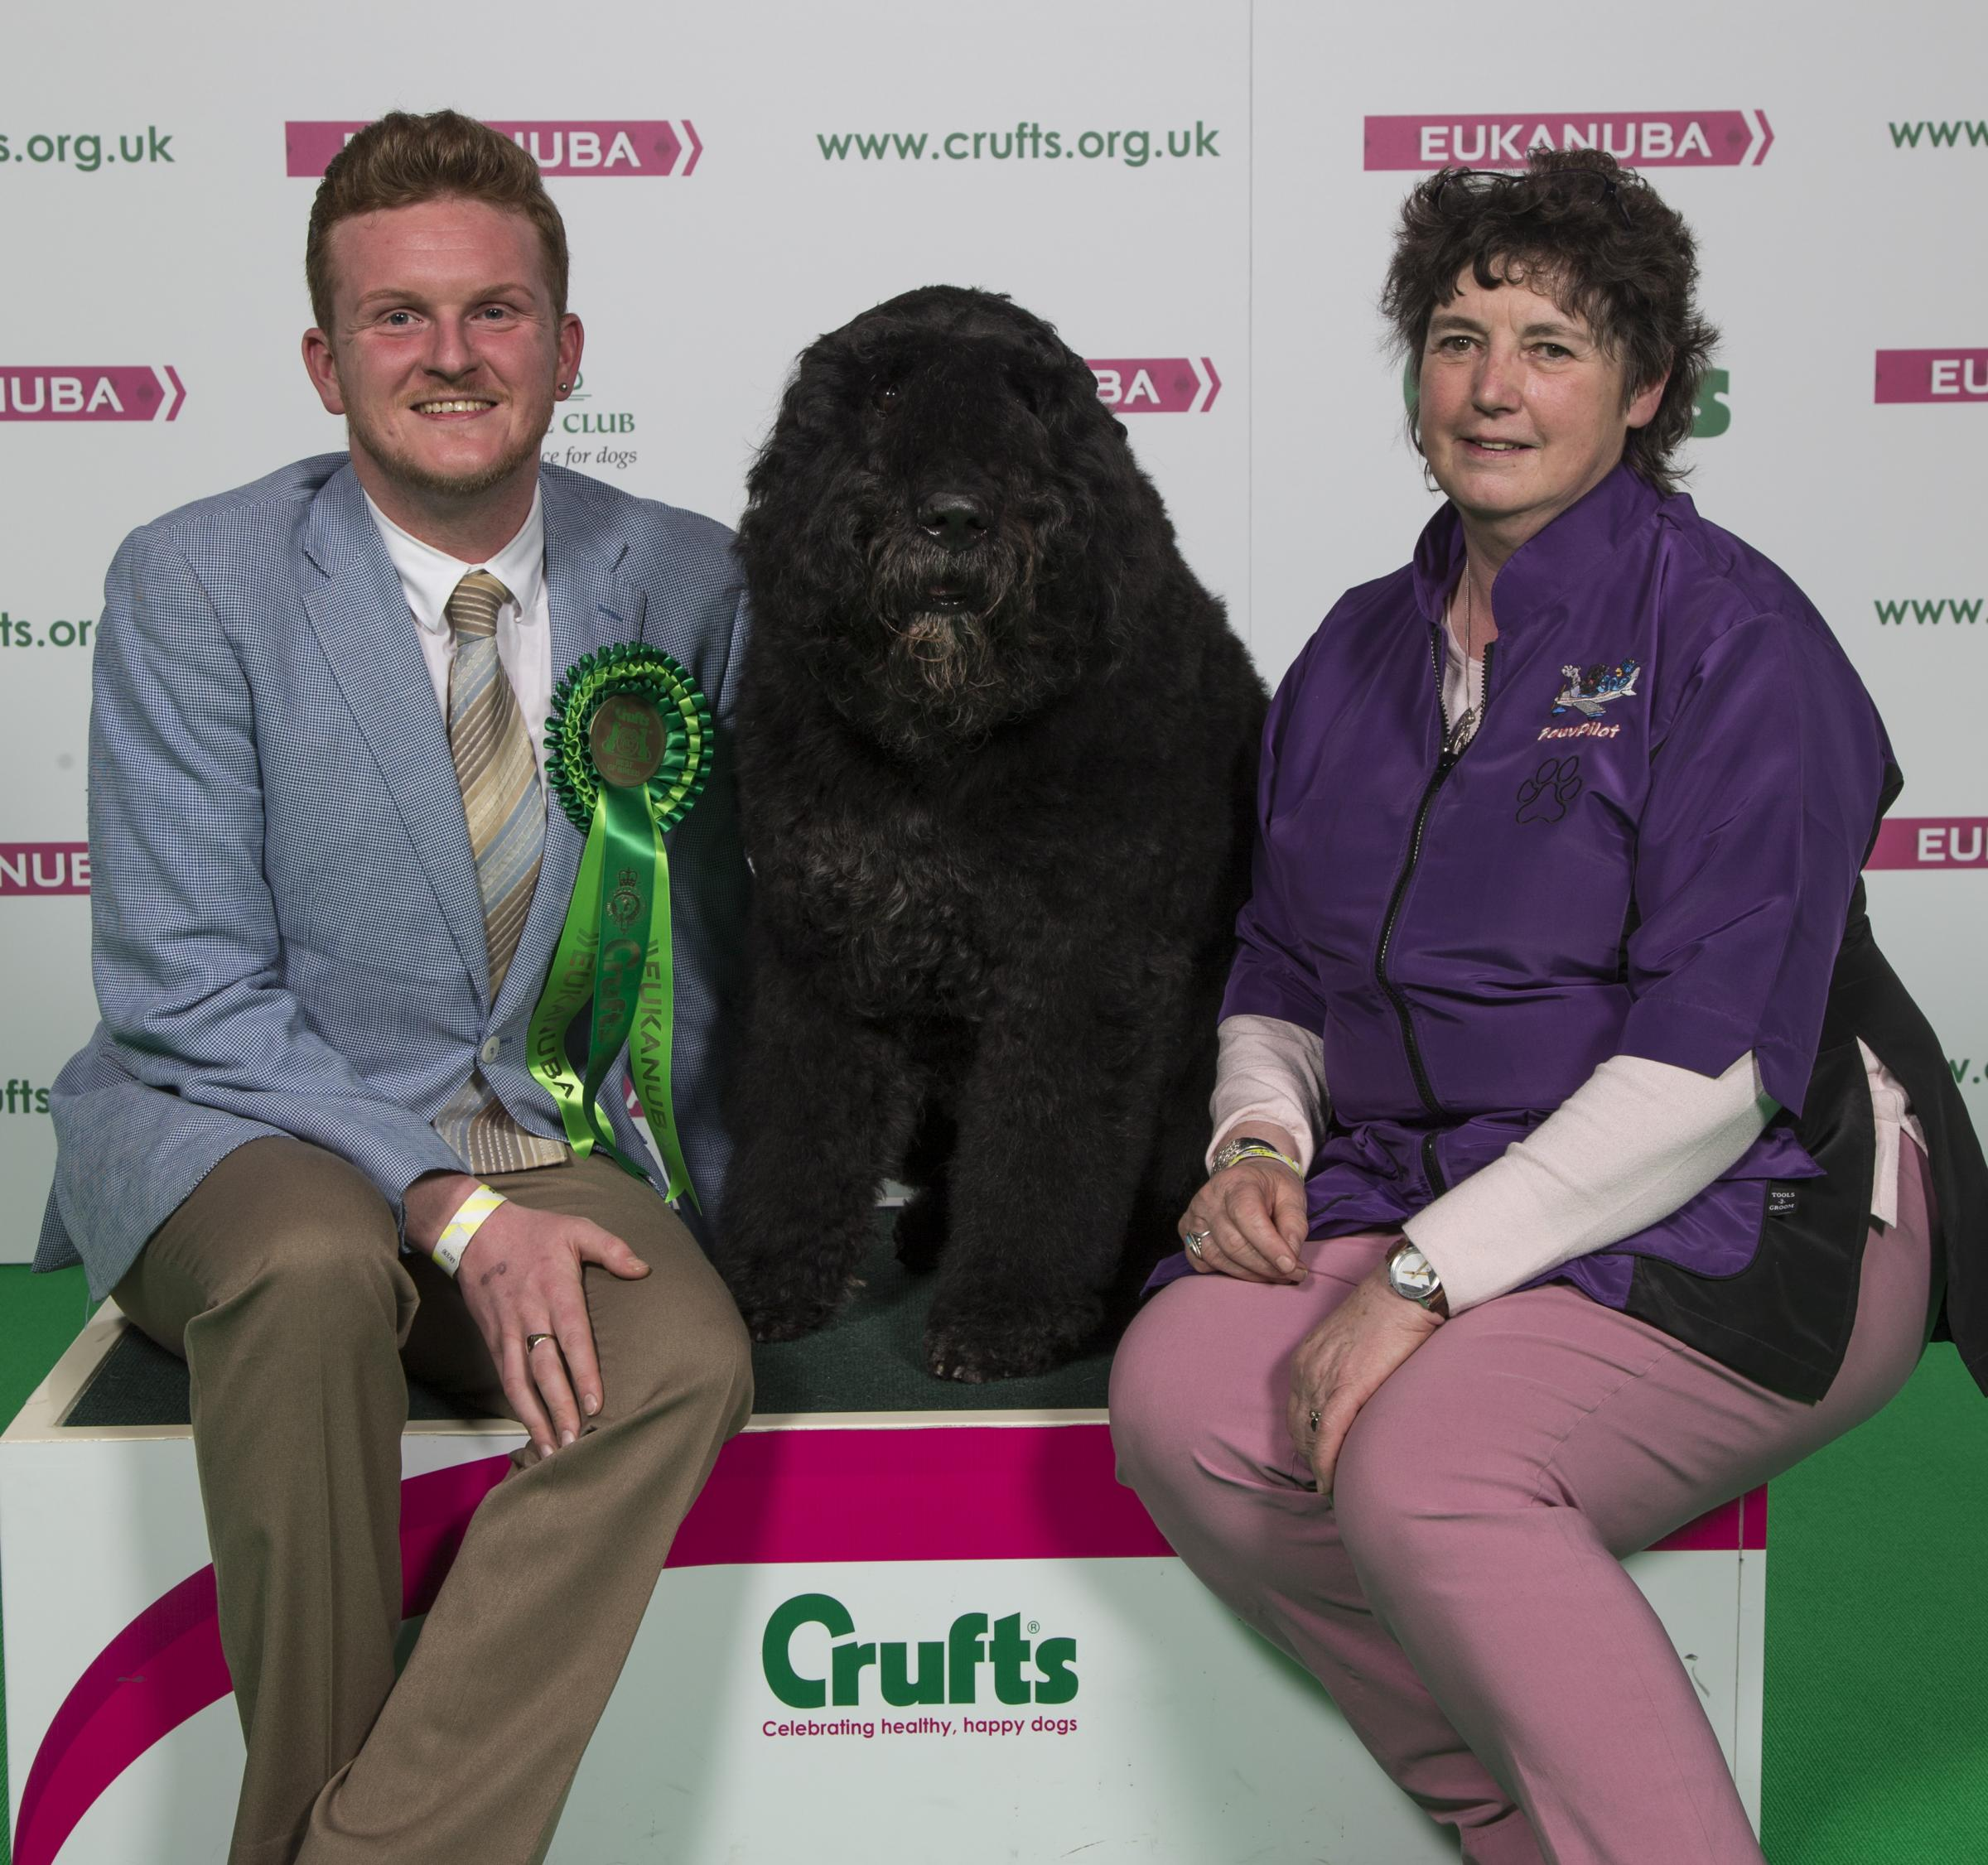 Hector at Crufts with Fiona Lambert and Michael Craig - who is Hector's handler in the ring